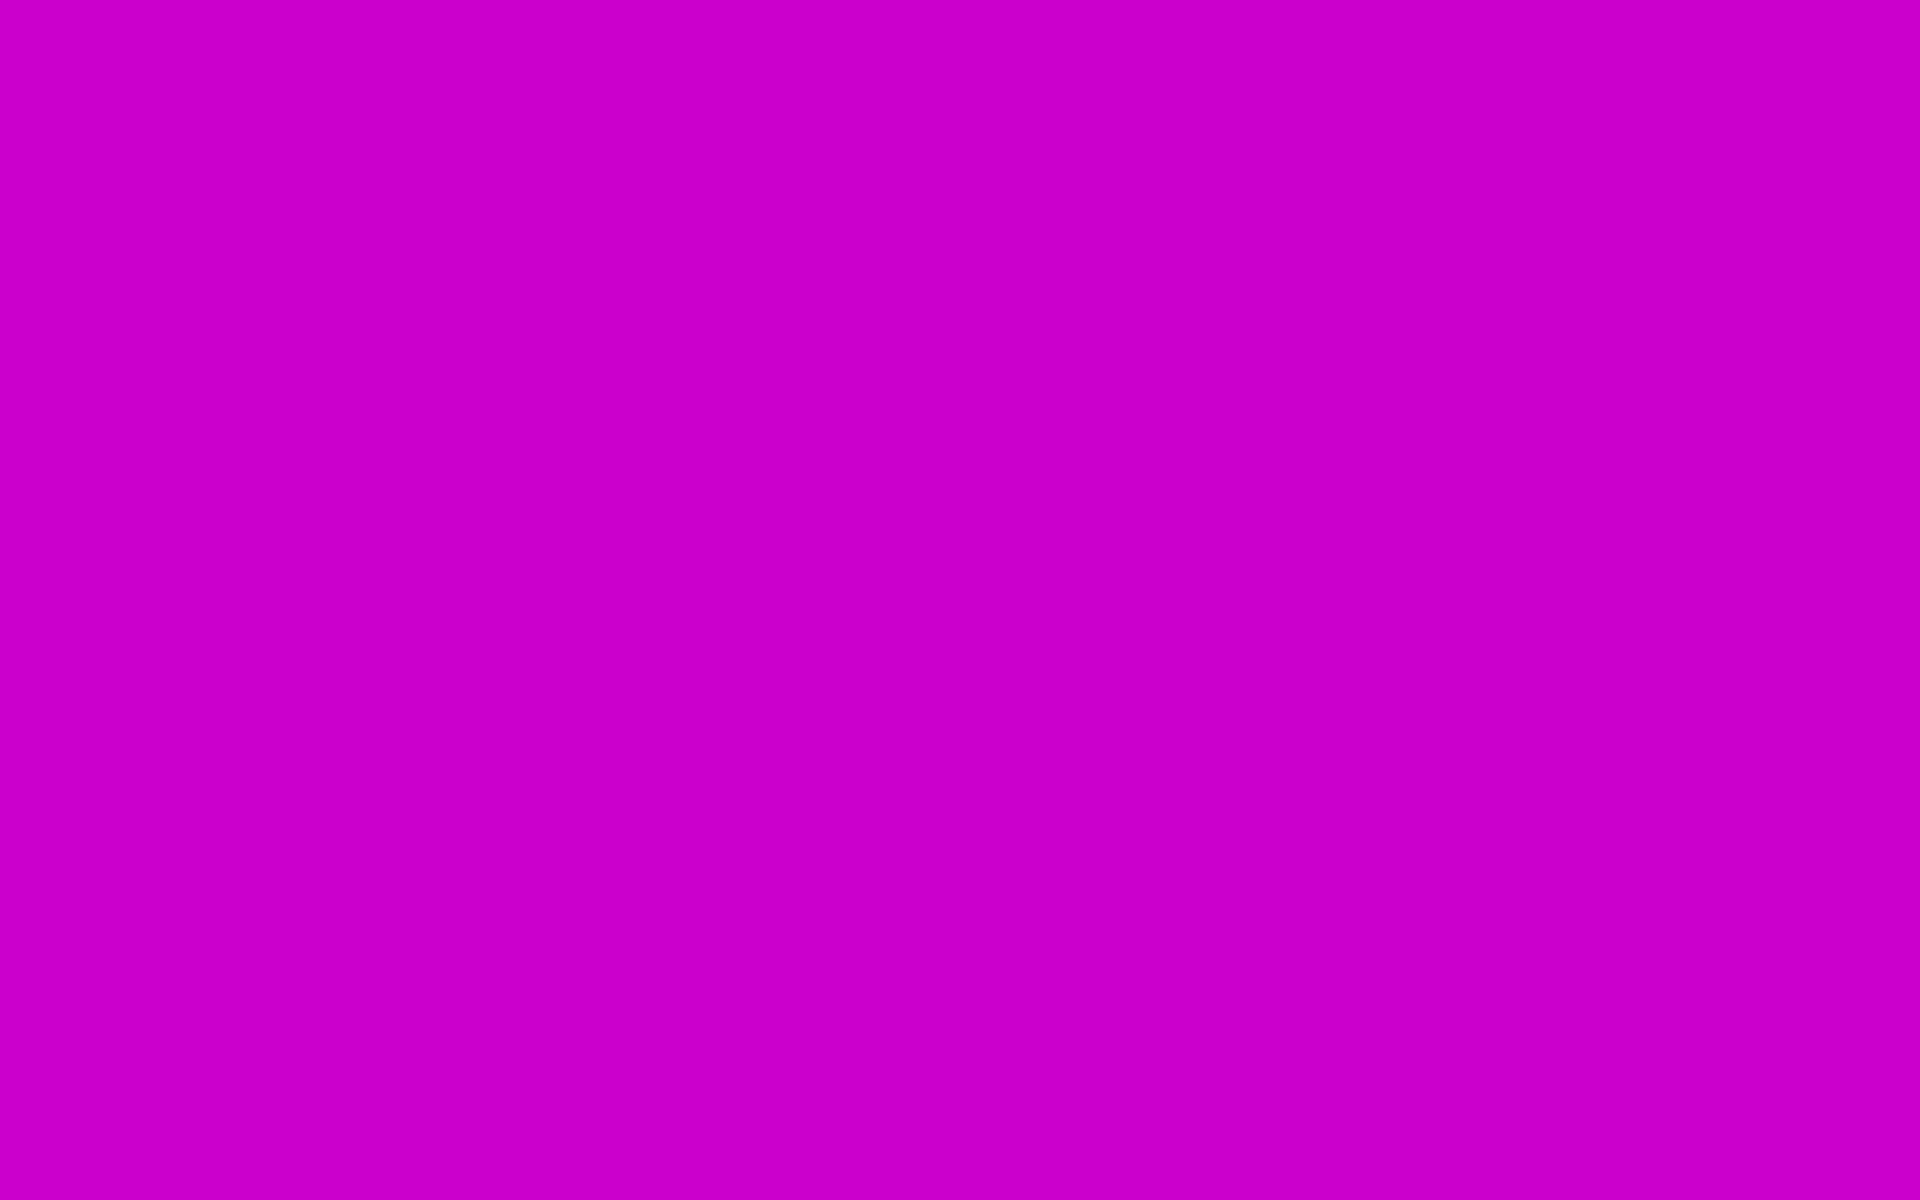 1920x1200 Deep Magenta Solid Color Background